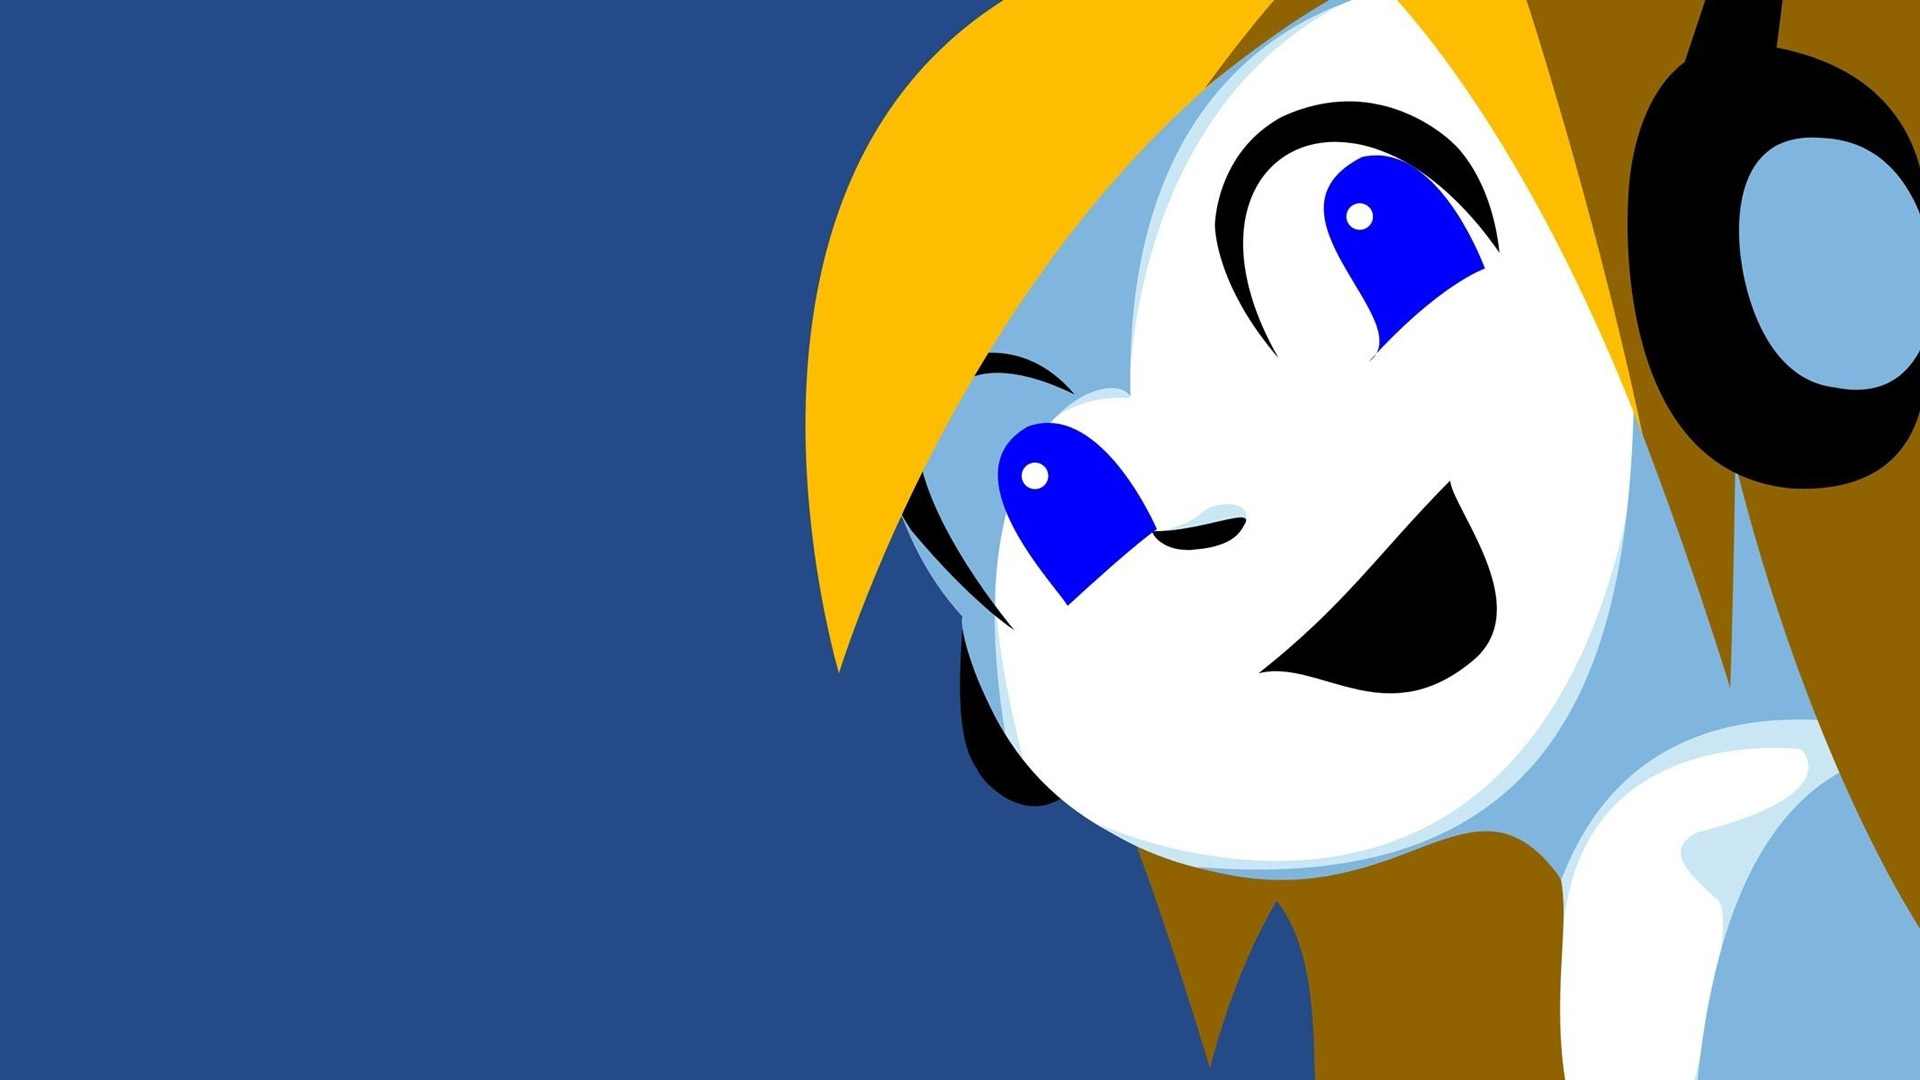 Free Cave Story Wallpaper in 1920x1080